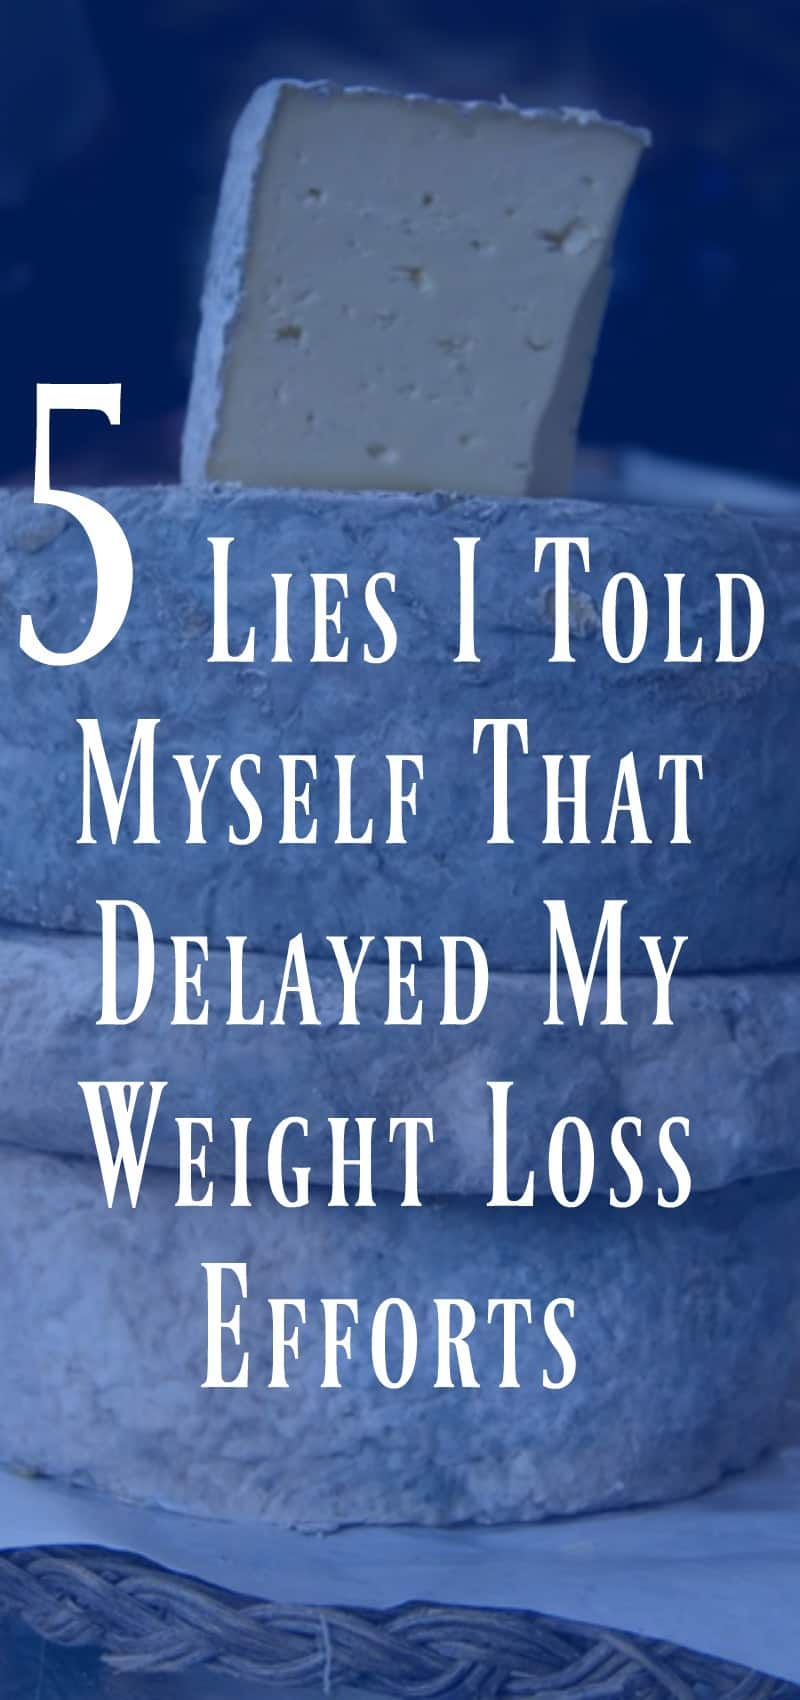 5 Lies I Told Myself That Delayed My Weight Loss Efforts